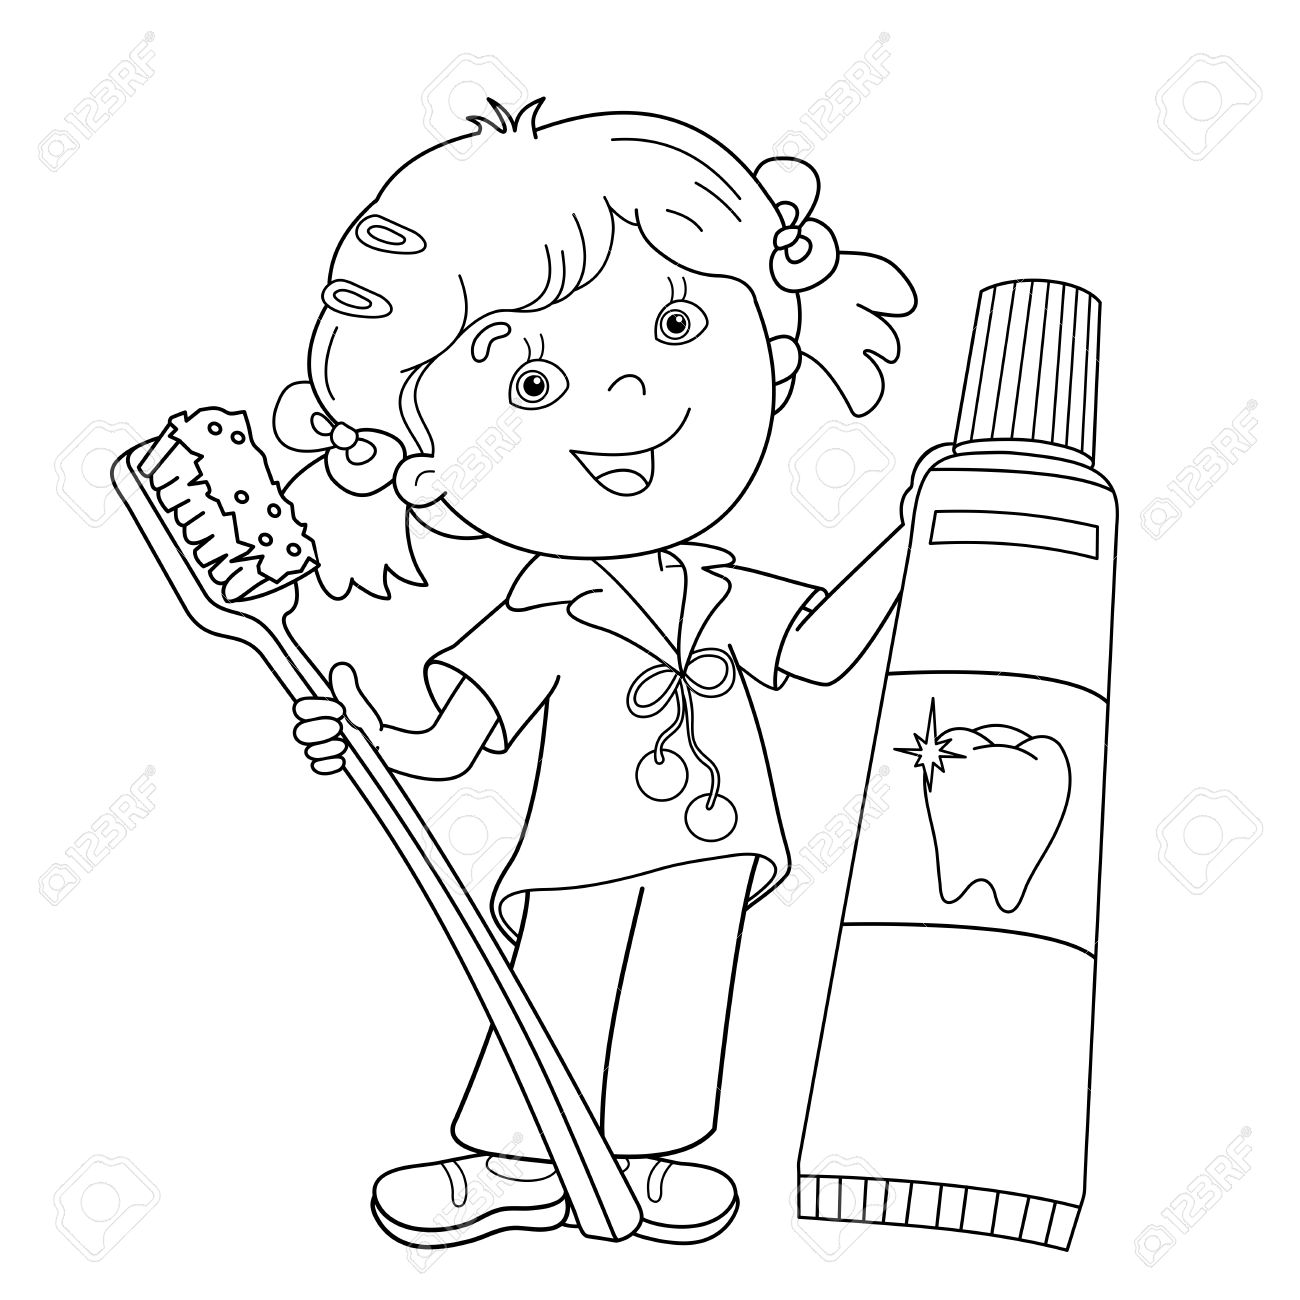 Dental Health Coloring Pages | 1300x1300